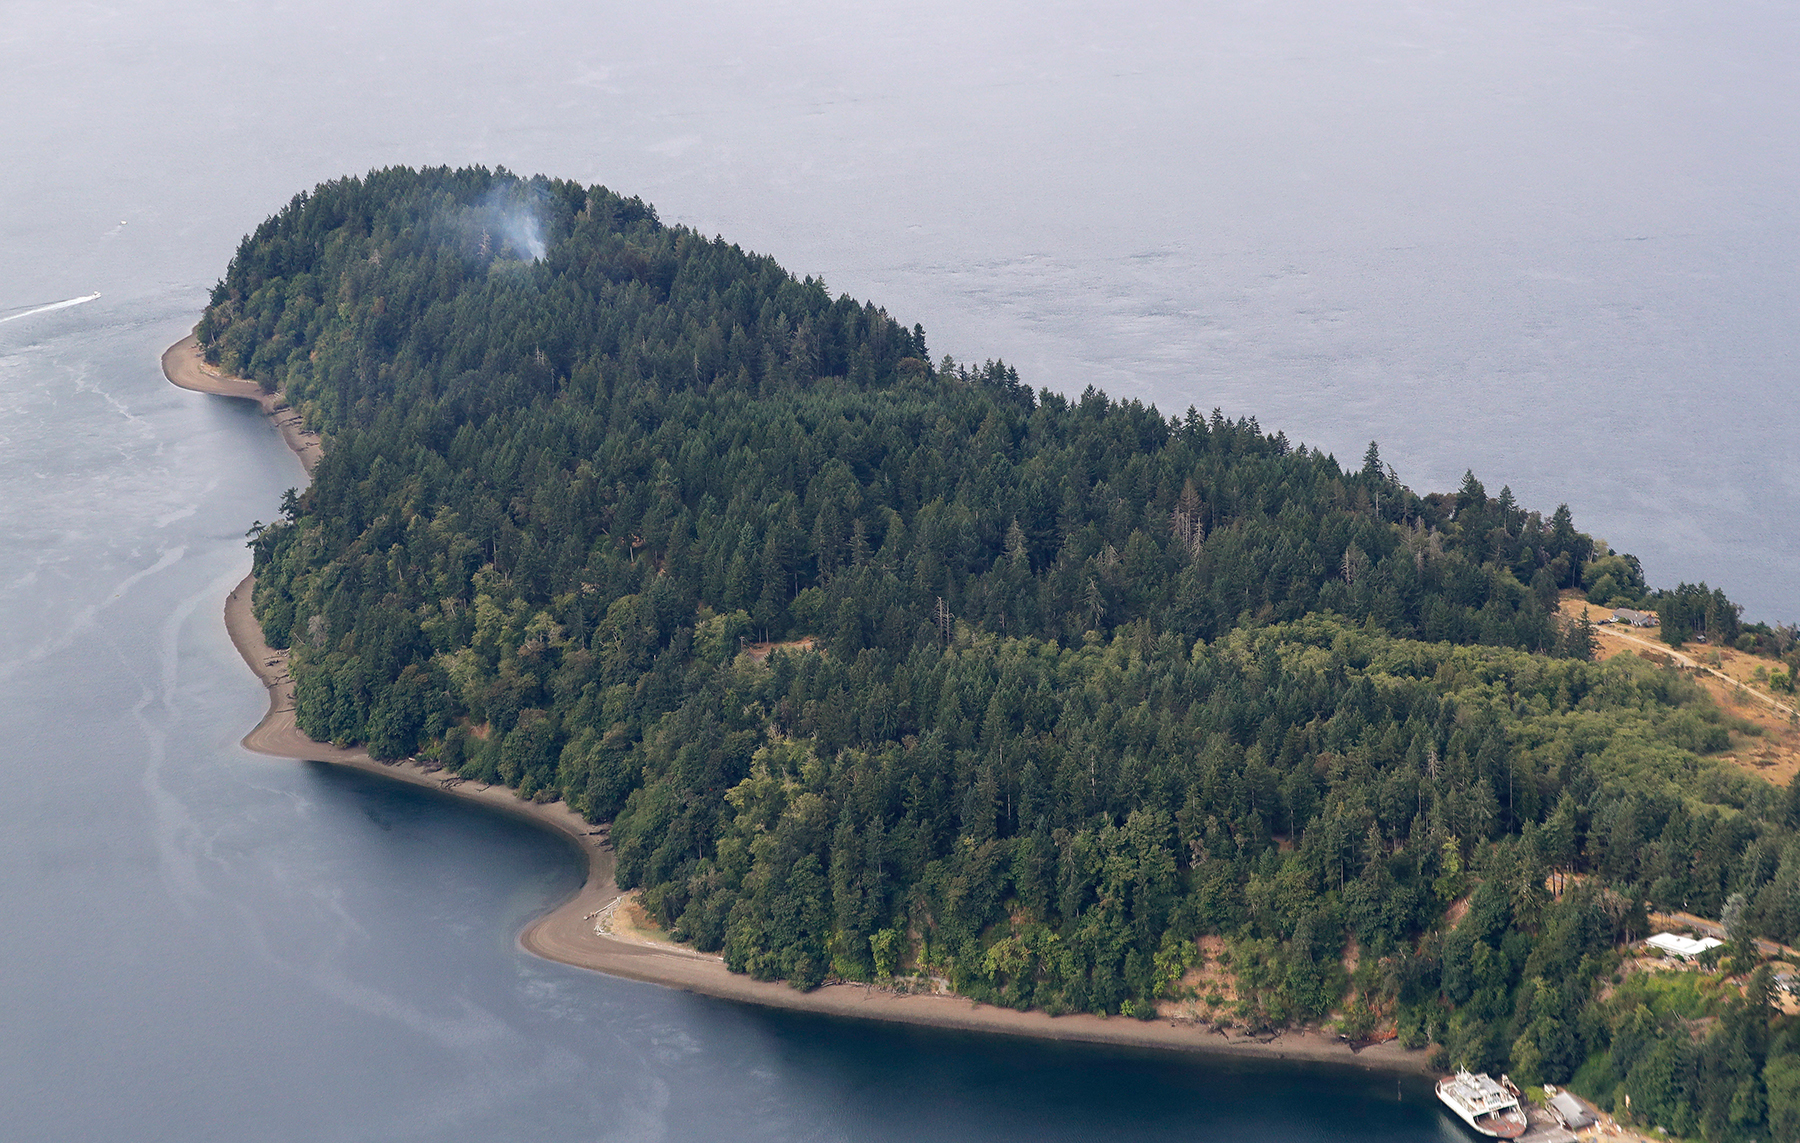 Smoke rises from the site on Ketron Island in Washington state where an Horizon Air turboprop plane crashed Friday after it was stolen from Sea-Tac International Airport as seen from the air, Saturday, Aug. 11, 2018, near Steilacoom, Wash. Investigators were working to find out how an airline employee stole the plane Friday and crashed it after being chased by military jets that were quickly scrambled to intercept the aircraft. (AP Photo/Ted S. Warren)